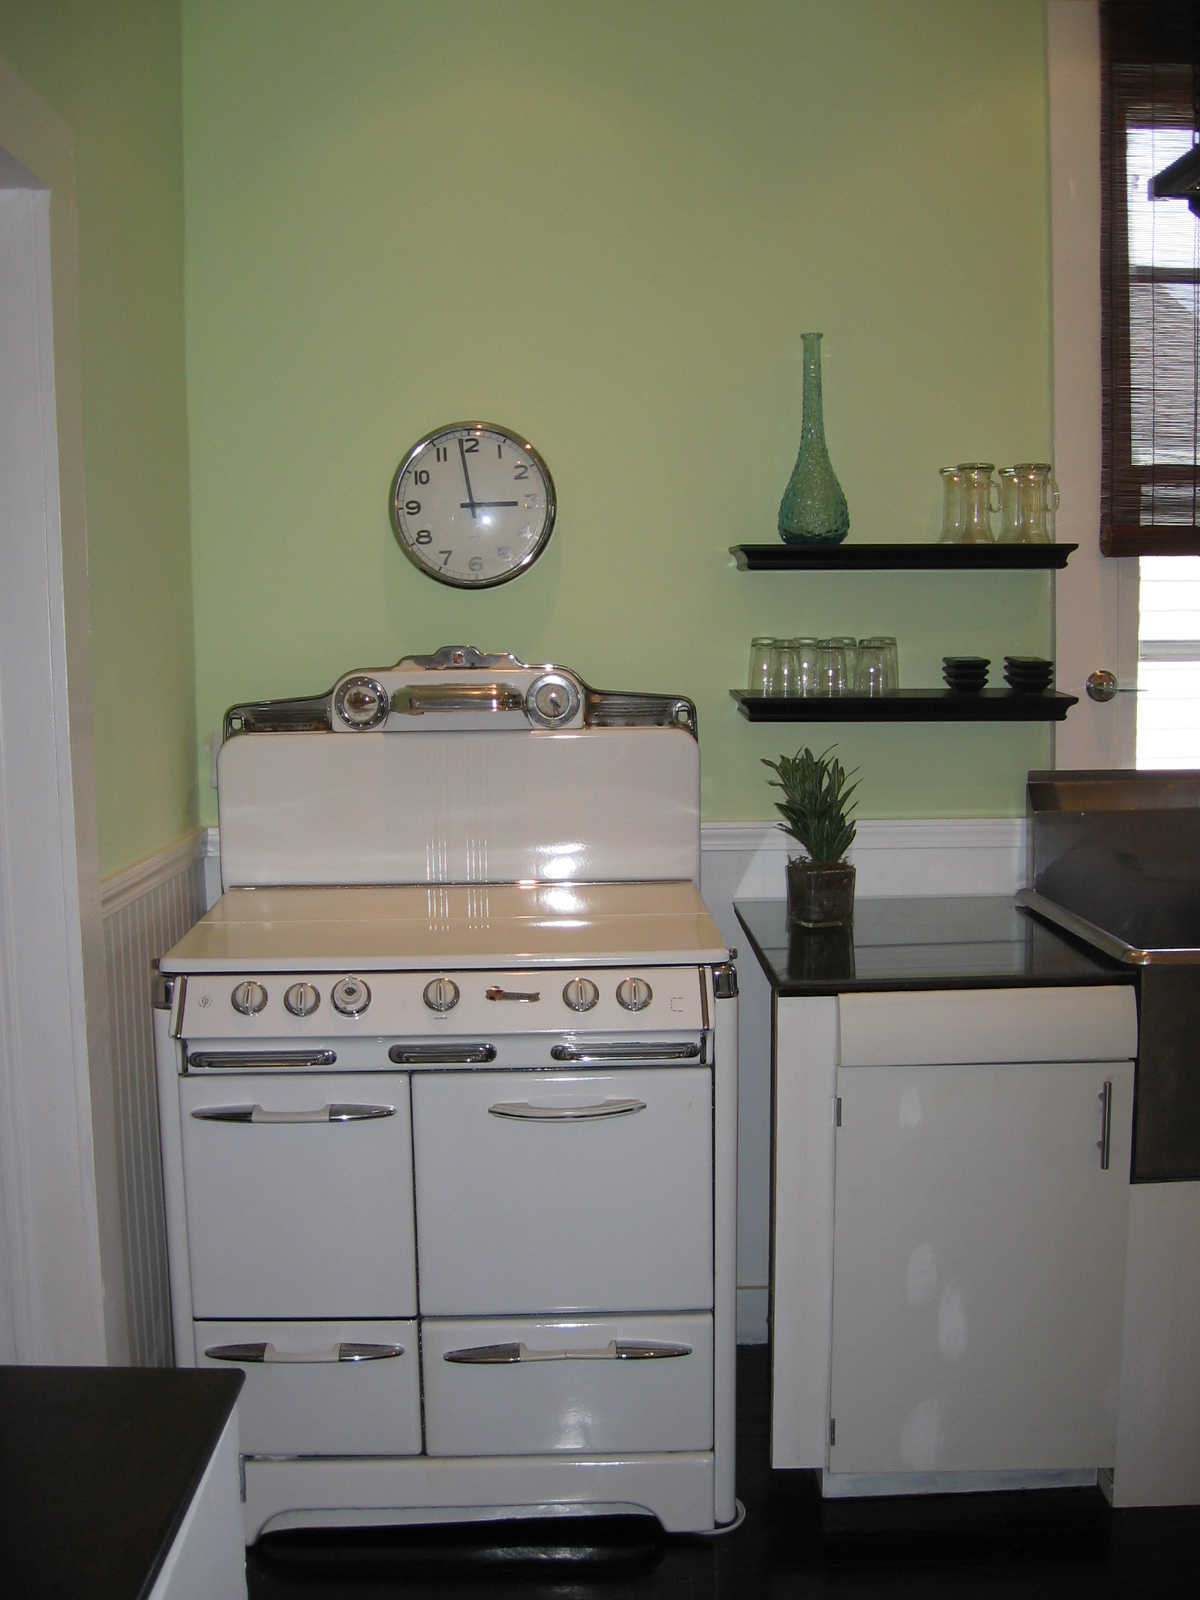 Description new orleans after kitchen vintage stove